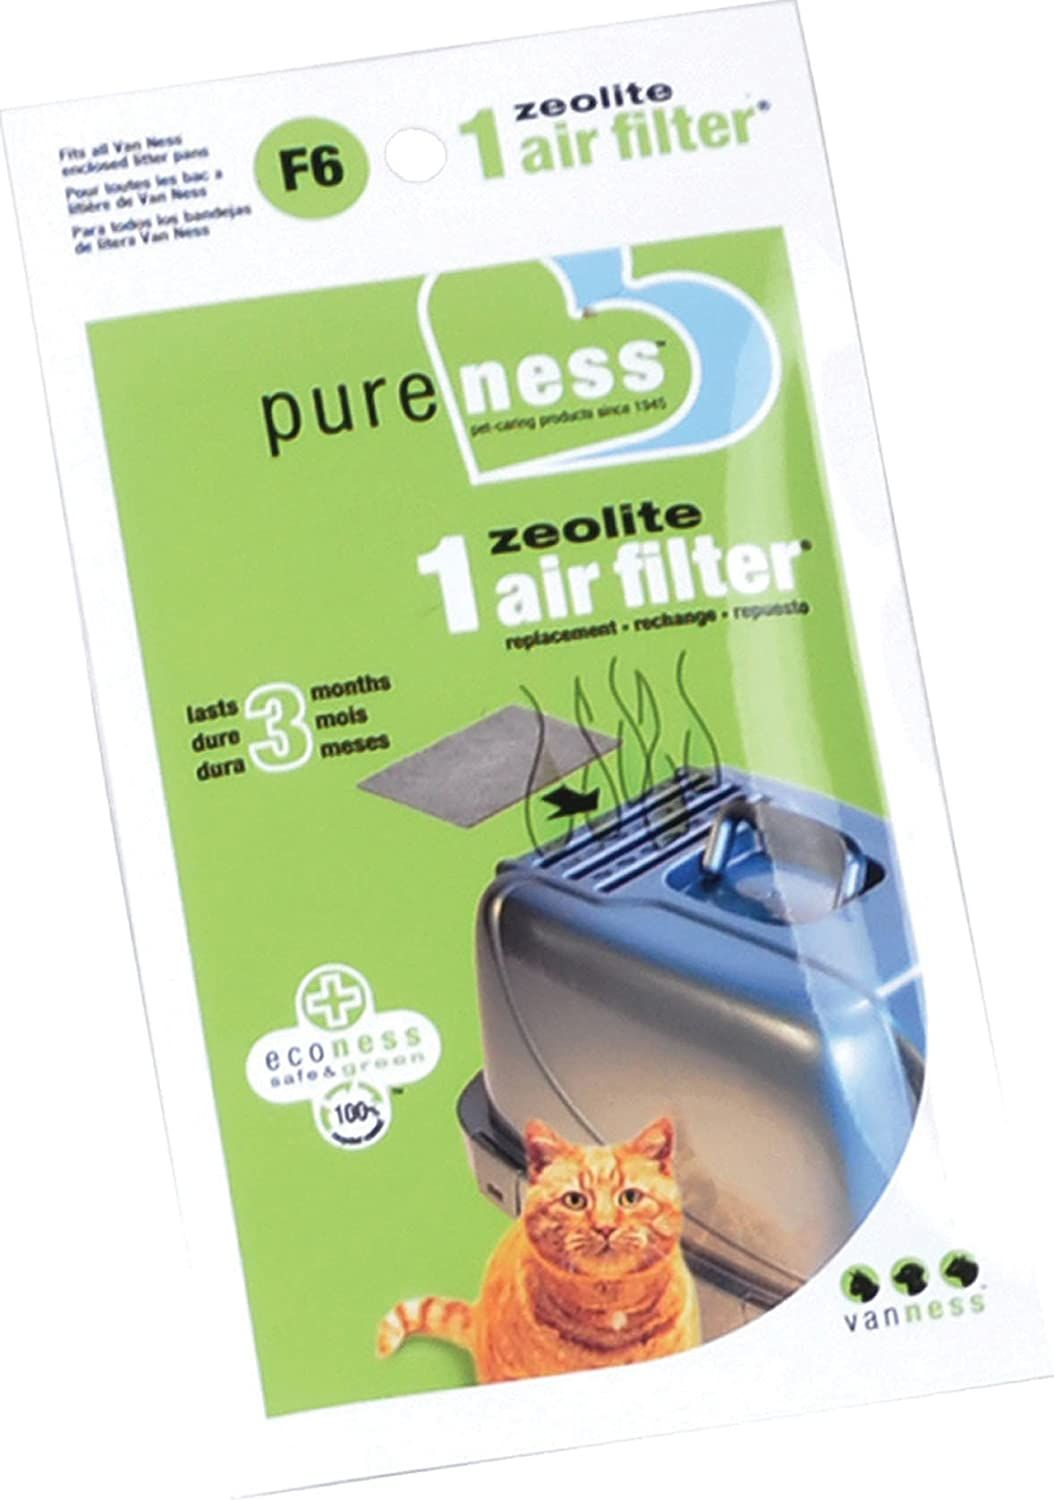 Pure Ness Zeolite Air Filter Check Out This Great Product This Is An Affiliate Link In 2020 Zeolite Plastic Moulding Pure Products